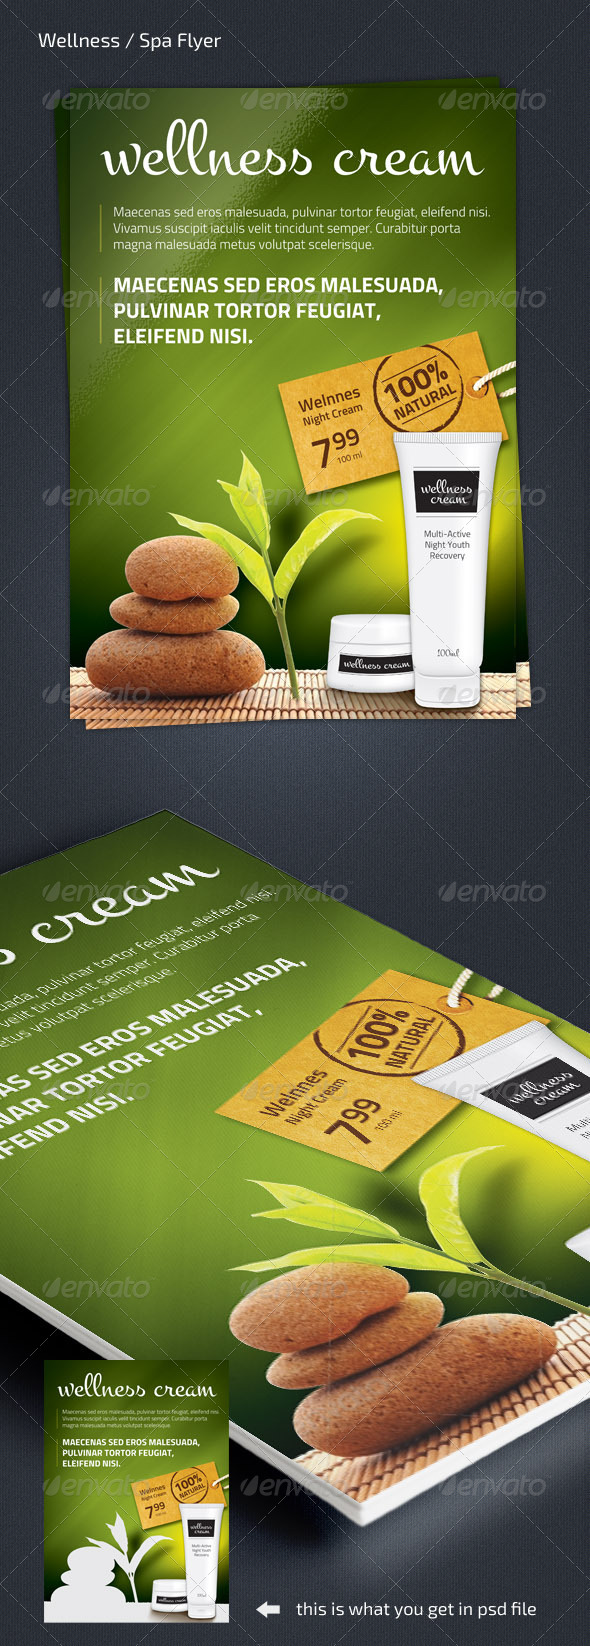 GraphicRiver Wellness Spa Product Flyer A4 210x297 7642914